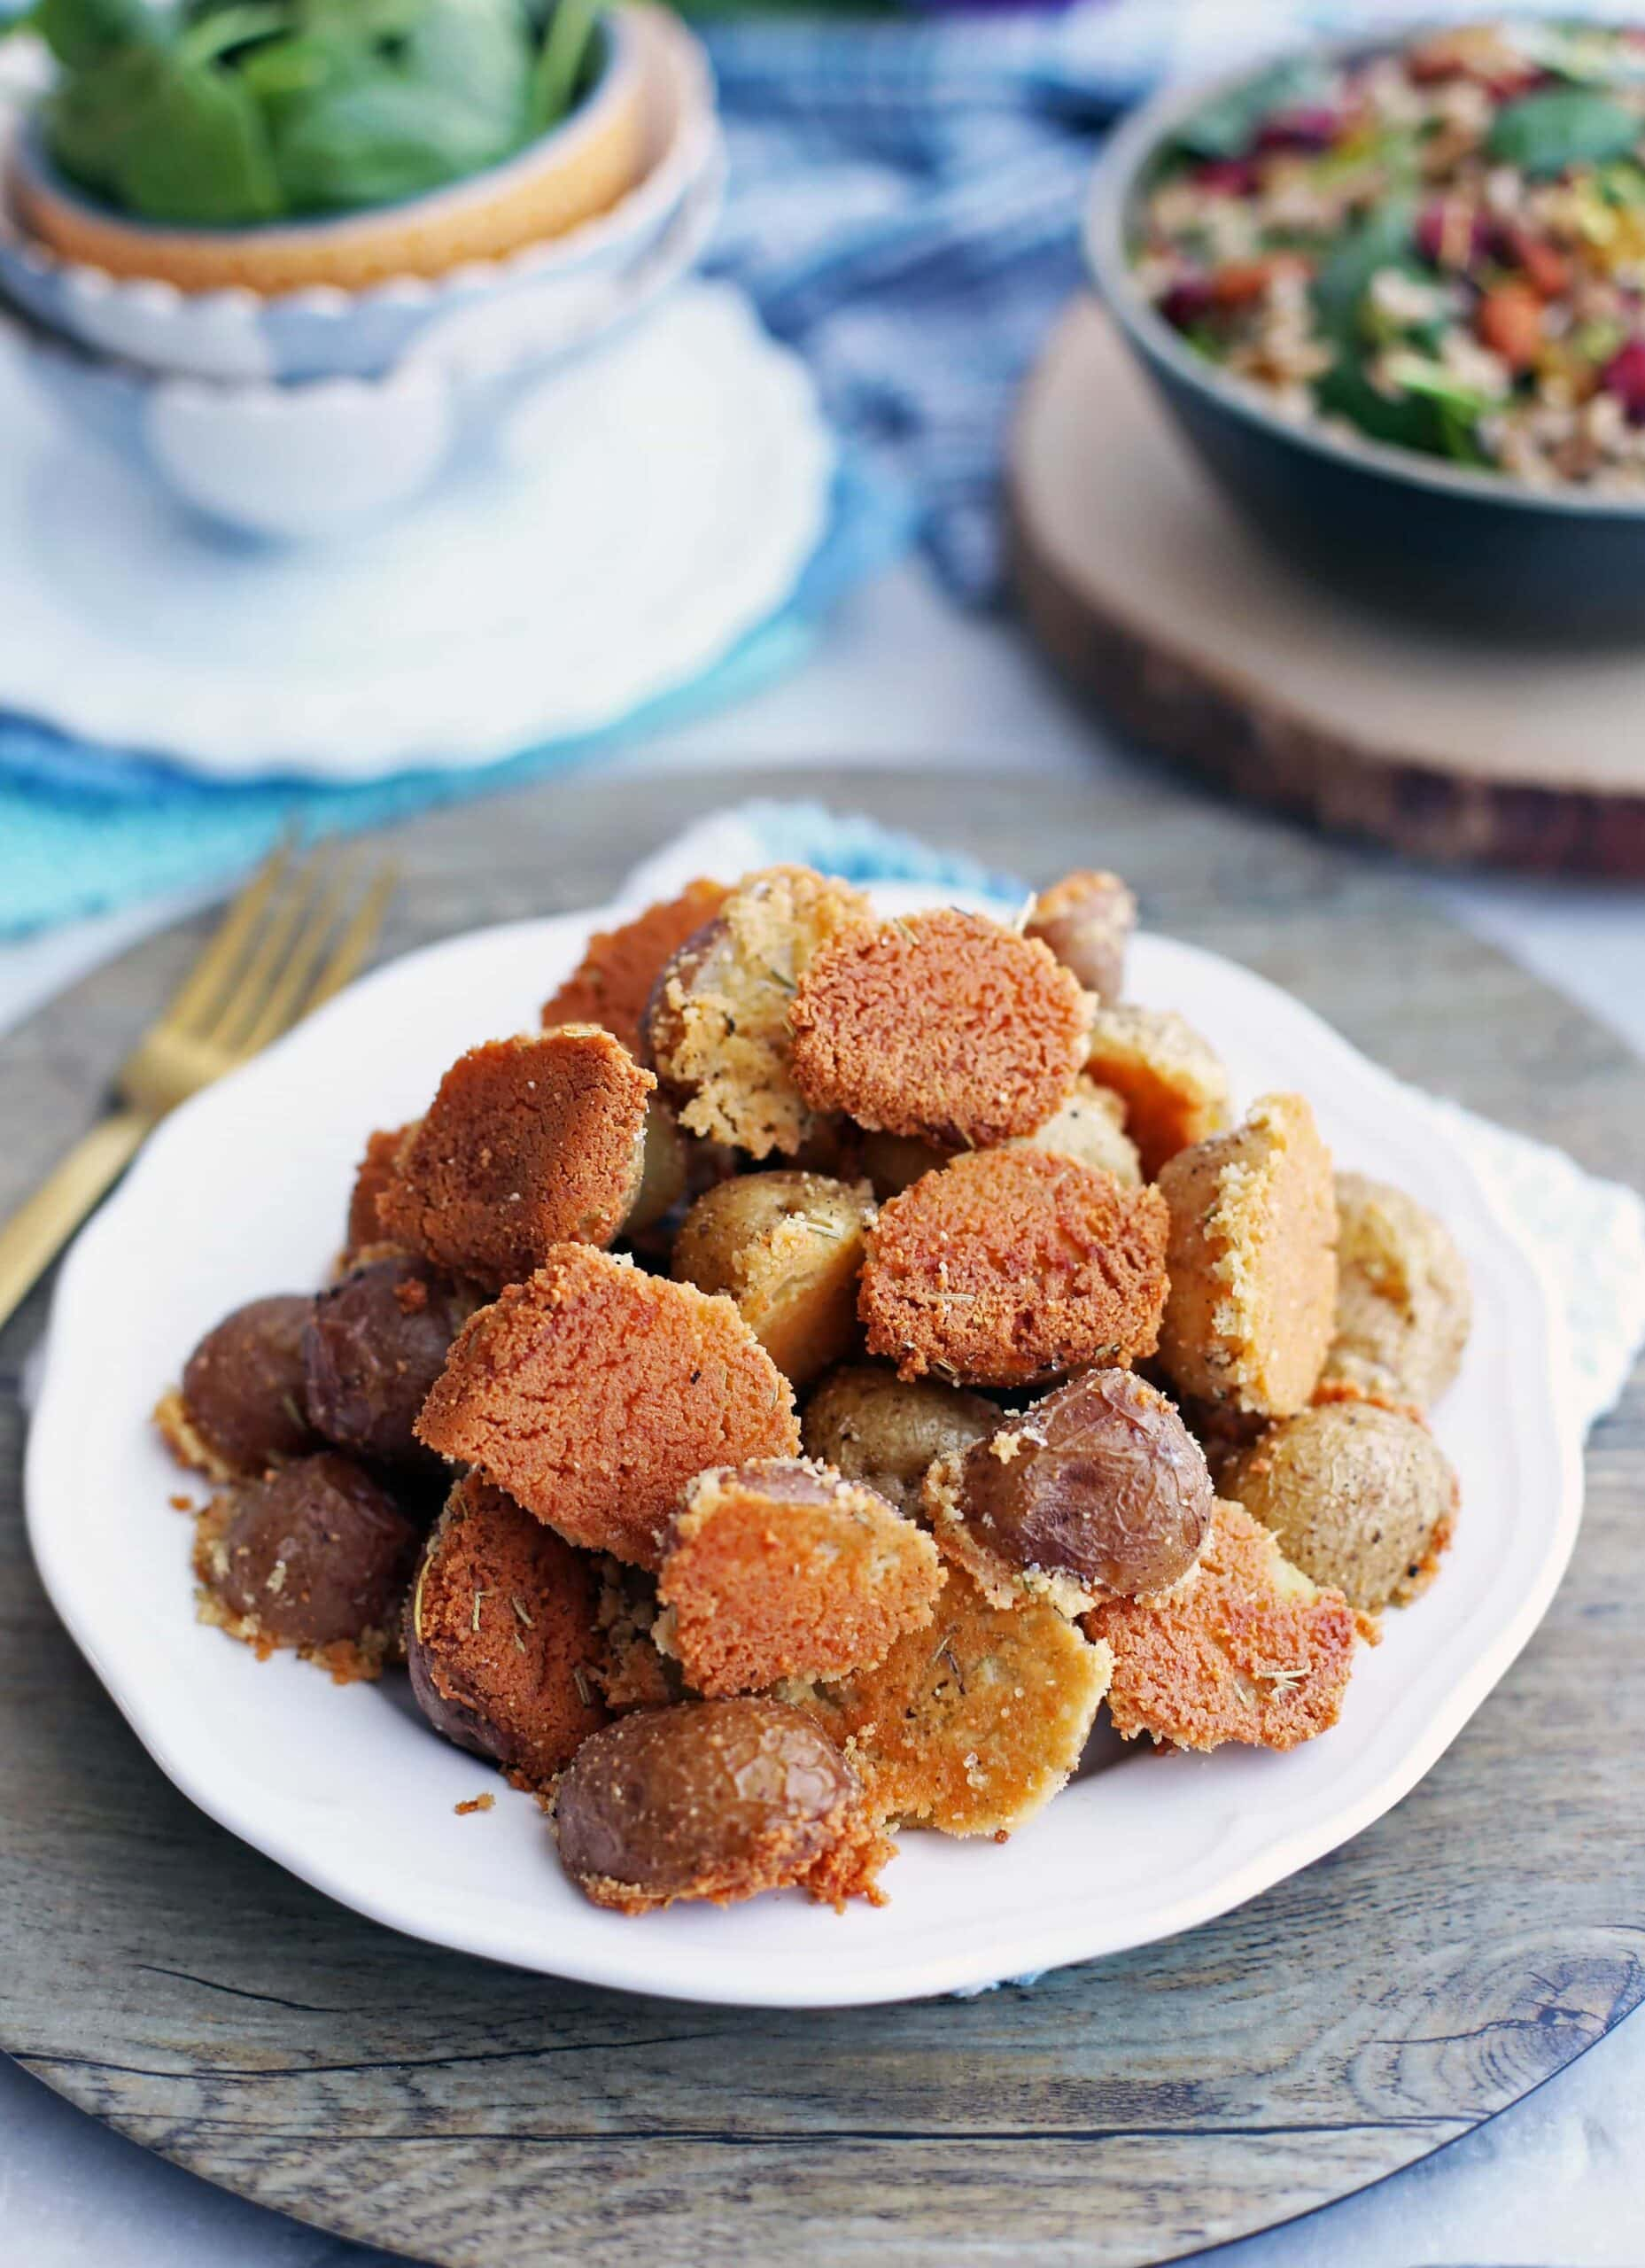 Crispy Parmesan Crusted Potatoes